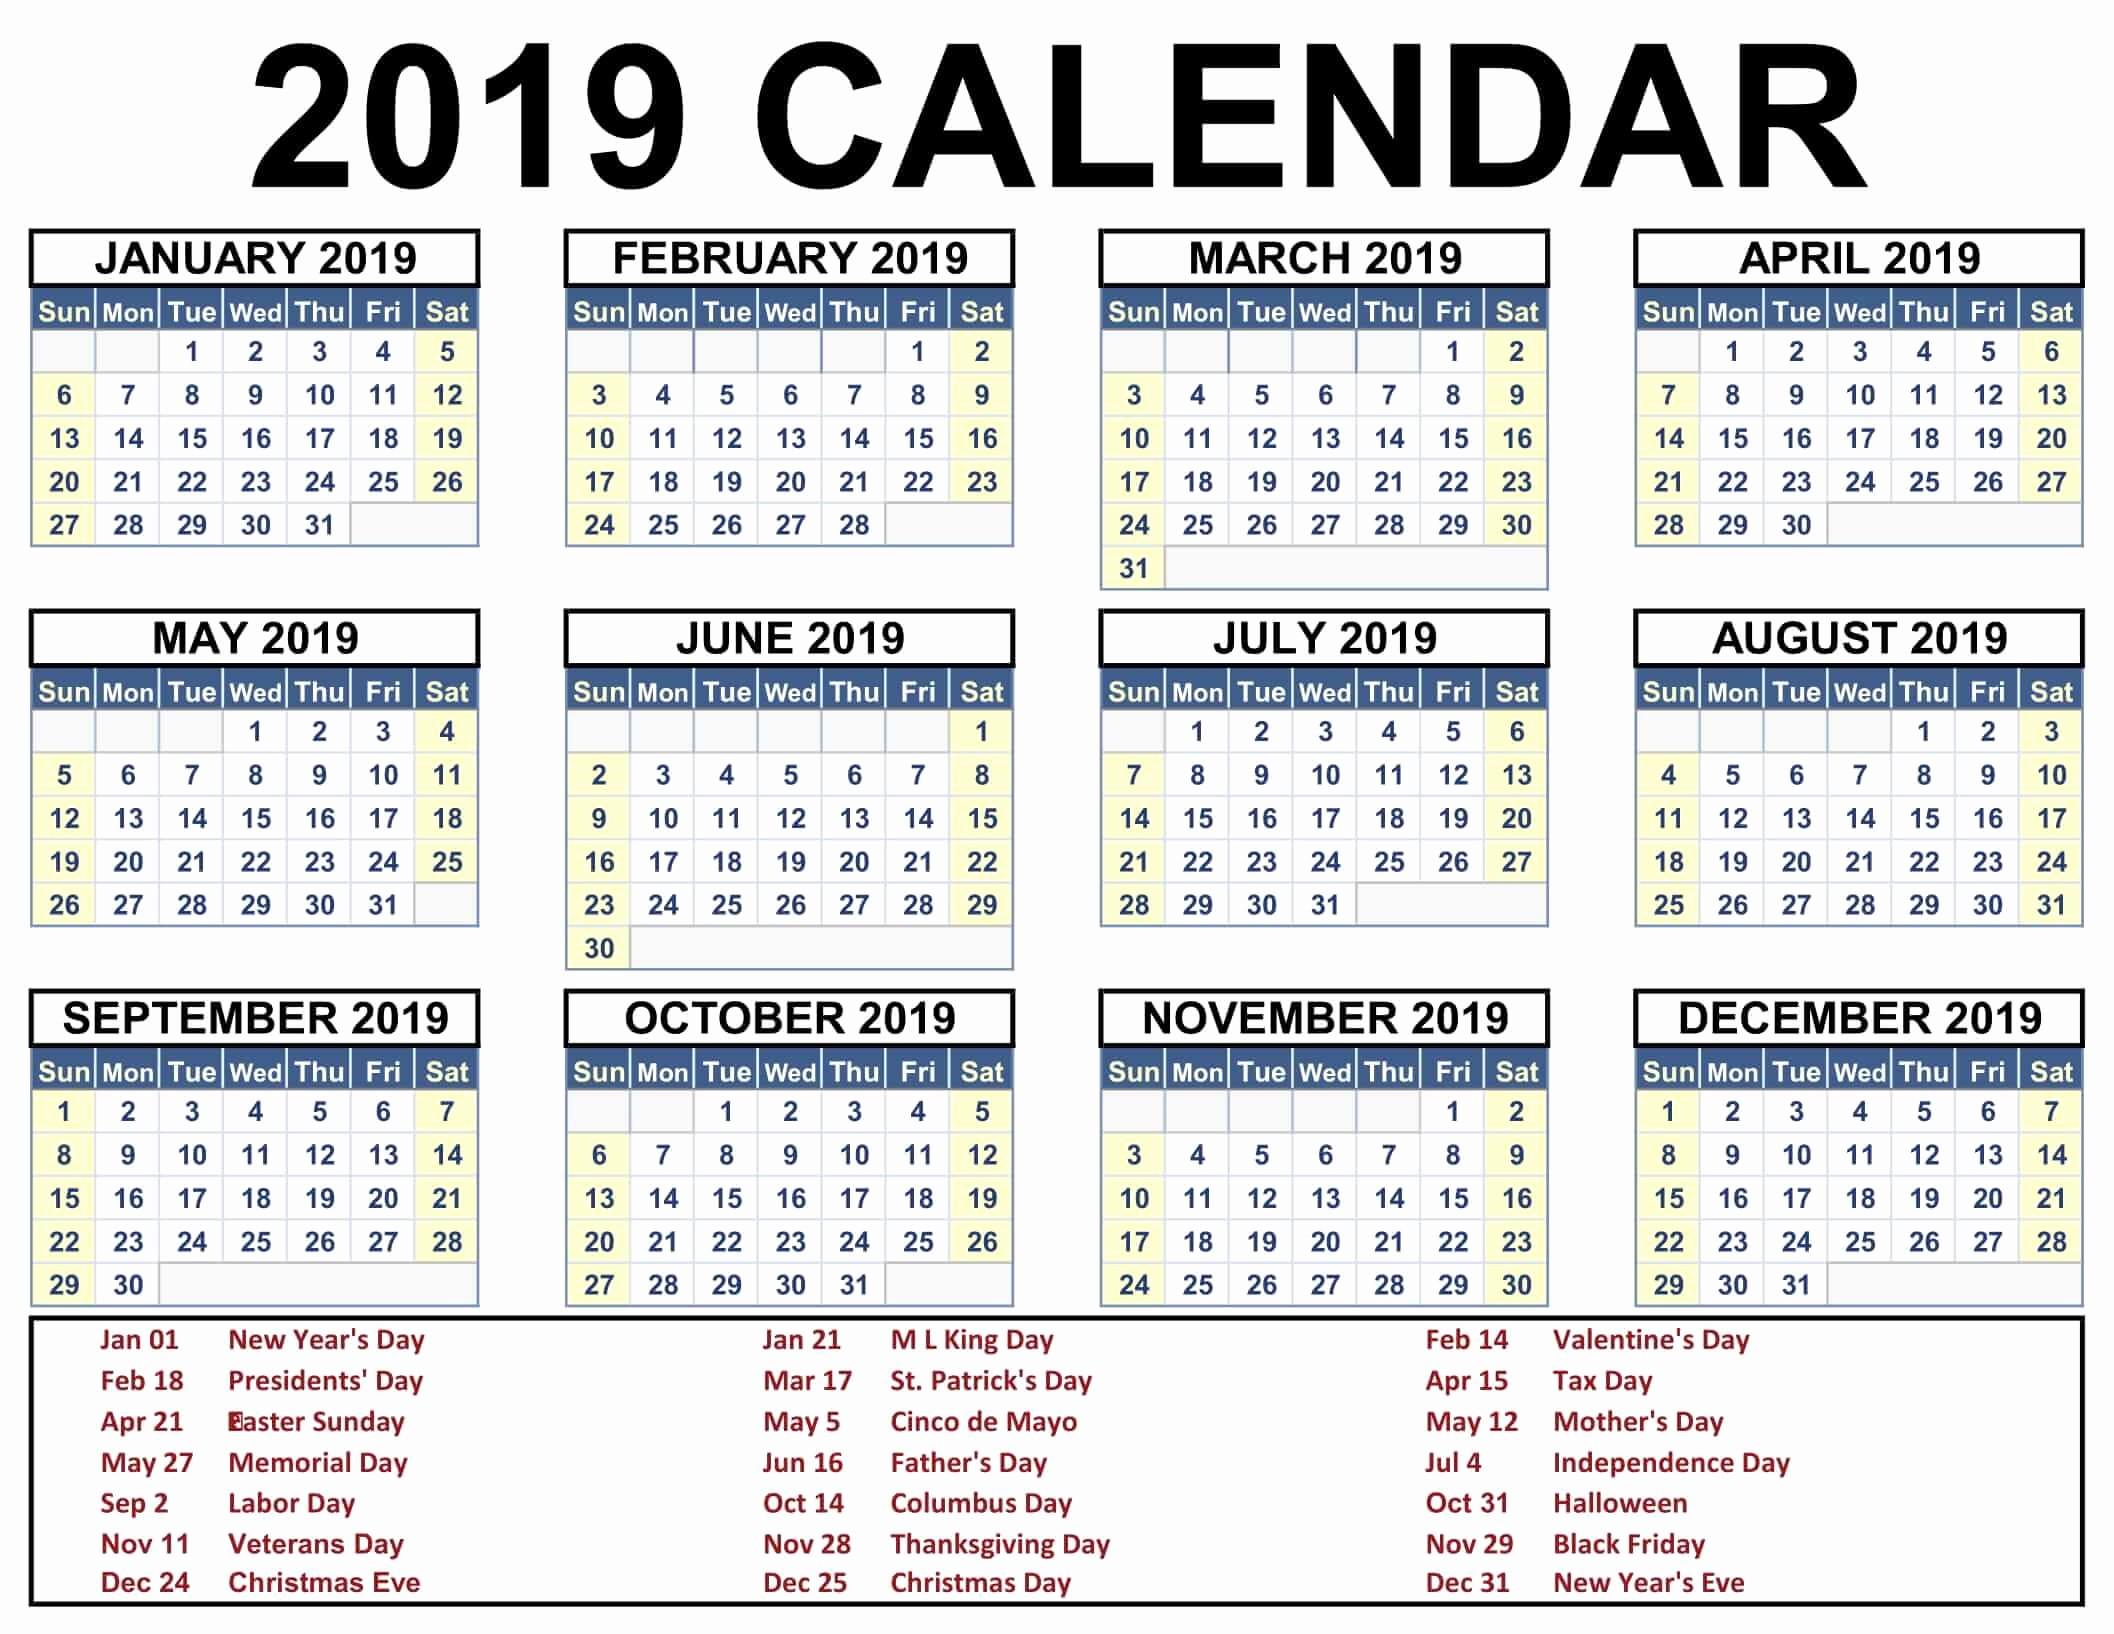 Printable Calendar 2018 and 2019 Luxury 2019 Calendar Holidays Usa India Uk Canada Australia